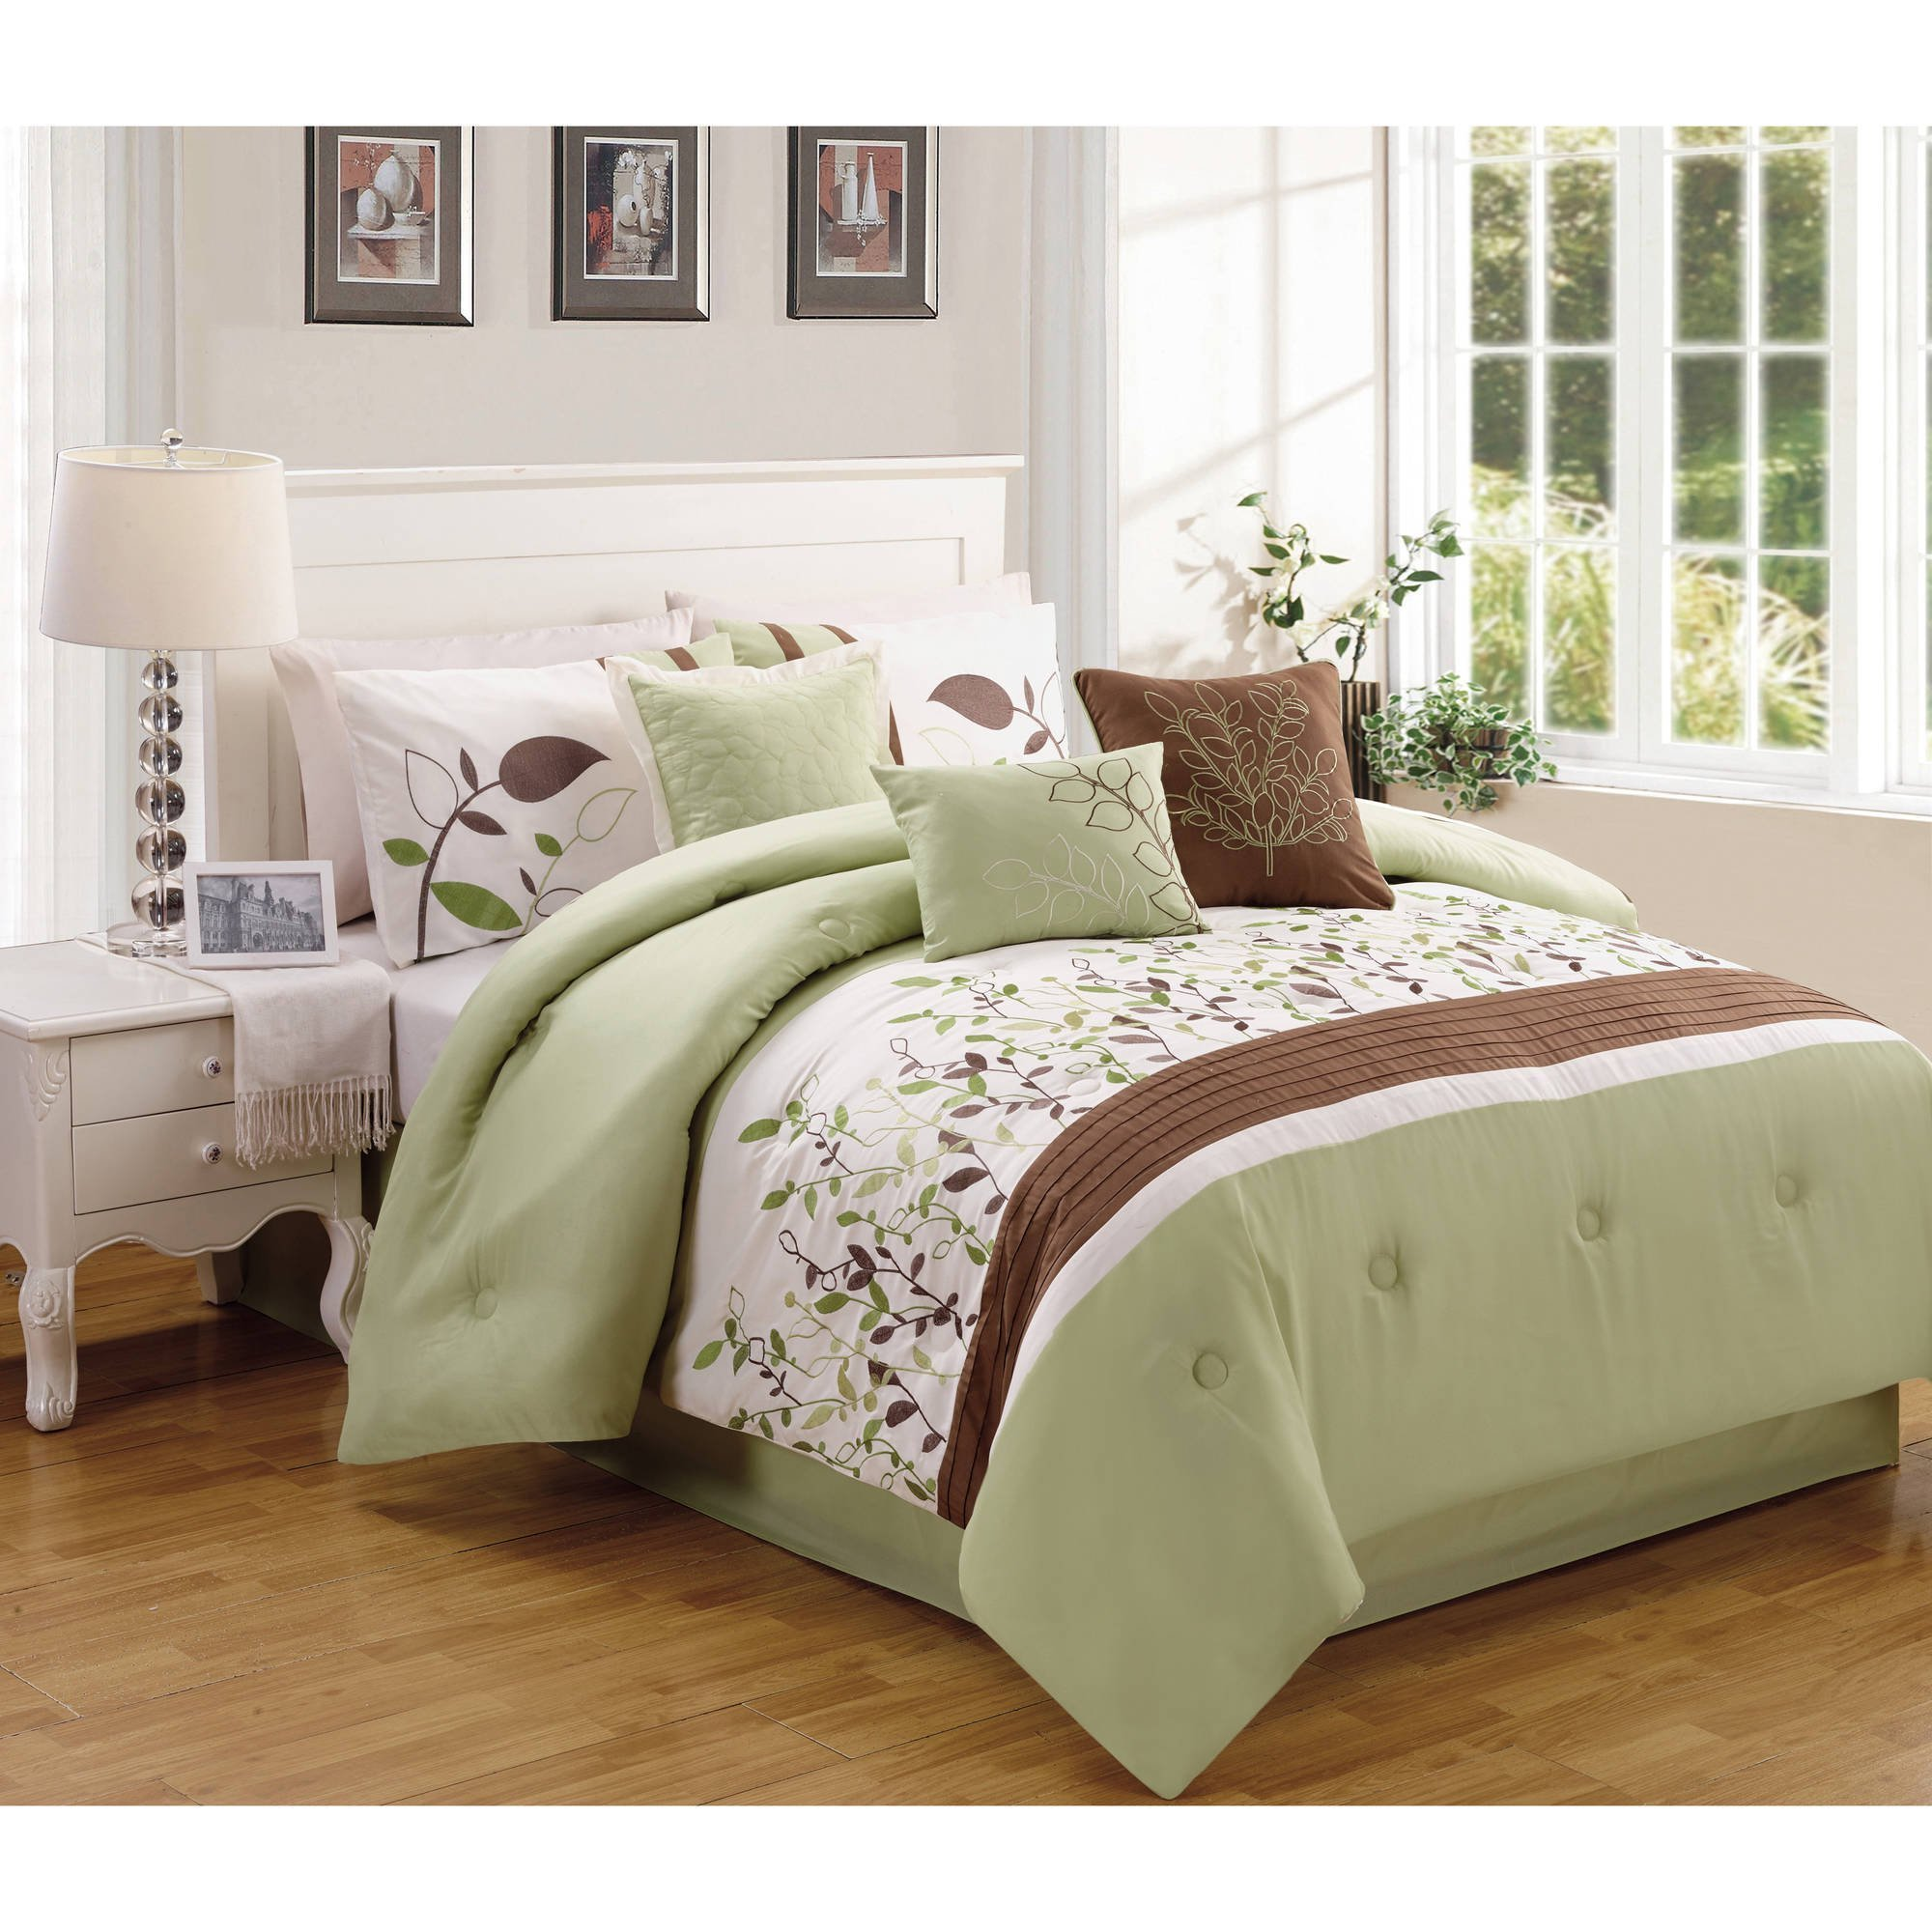 Best Better Homes And Gardens Pintuck Bedding Comforter Mini With Pictures